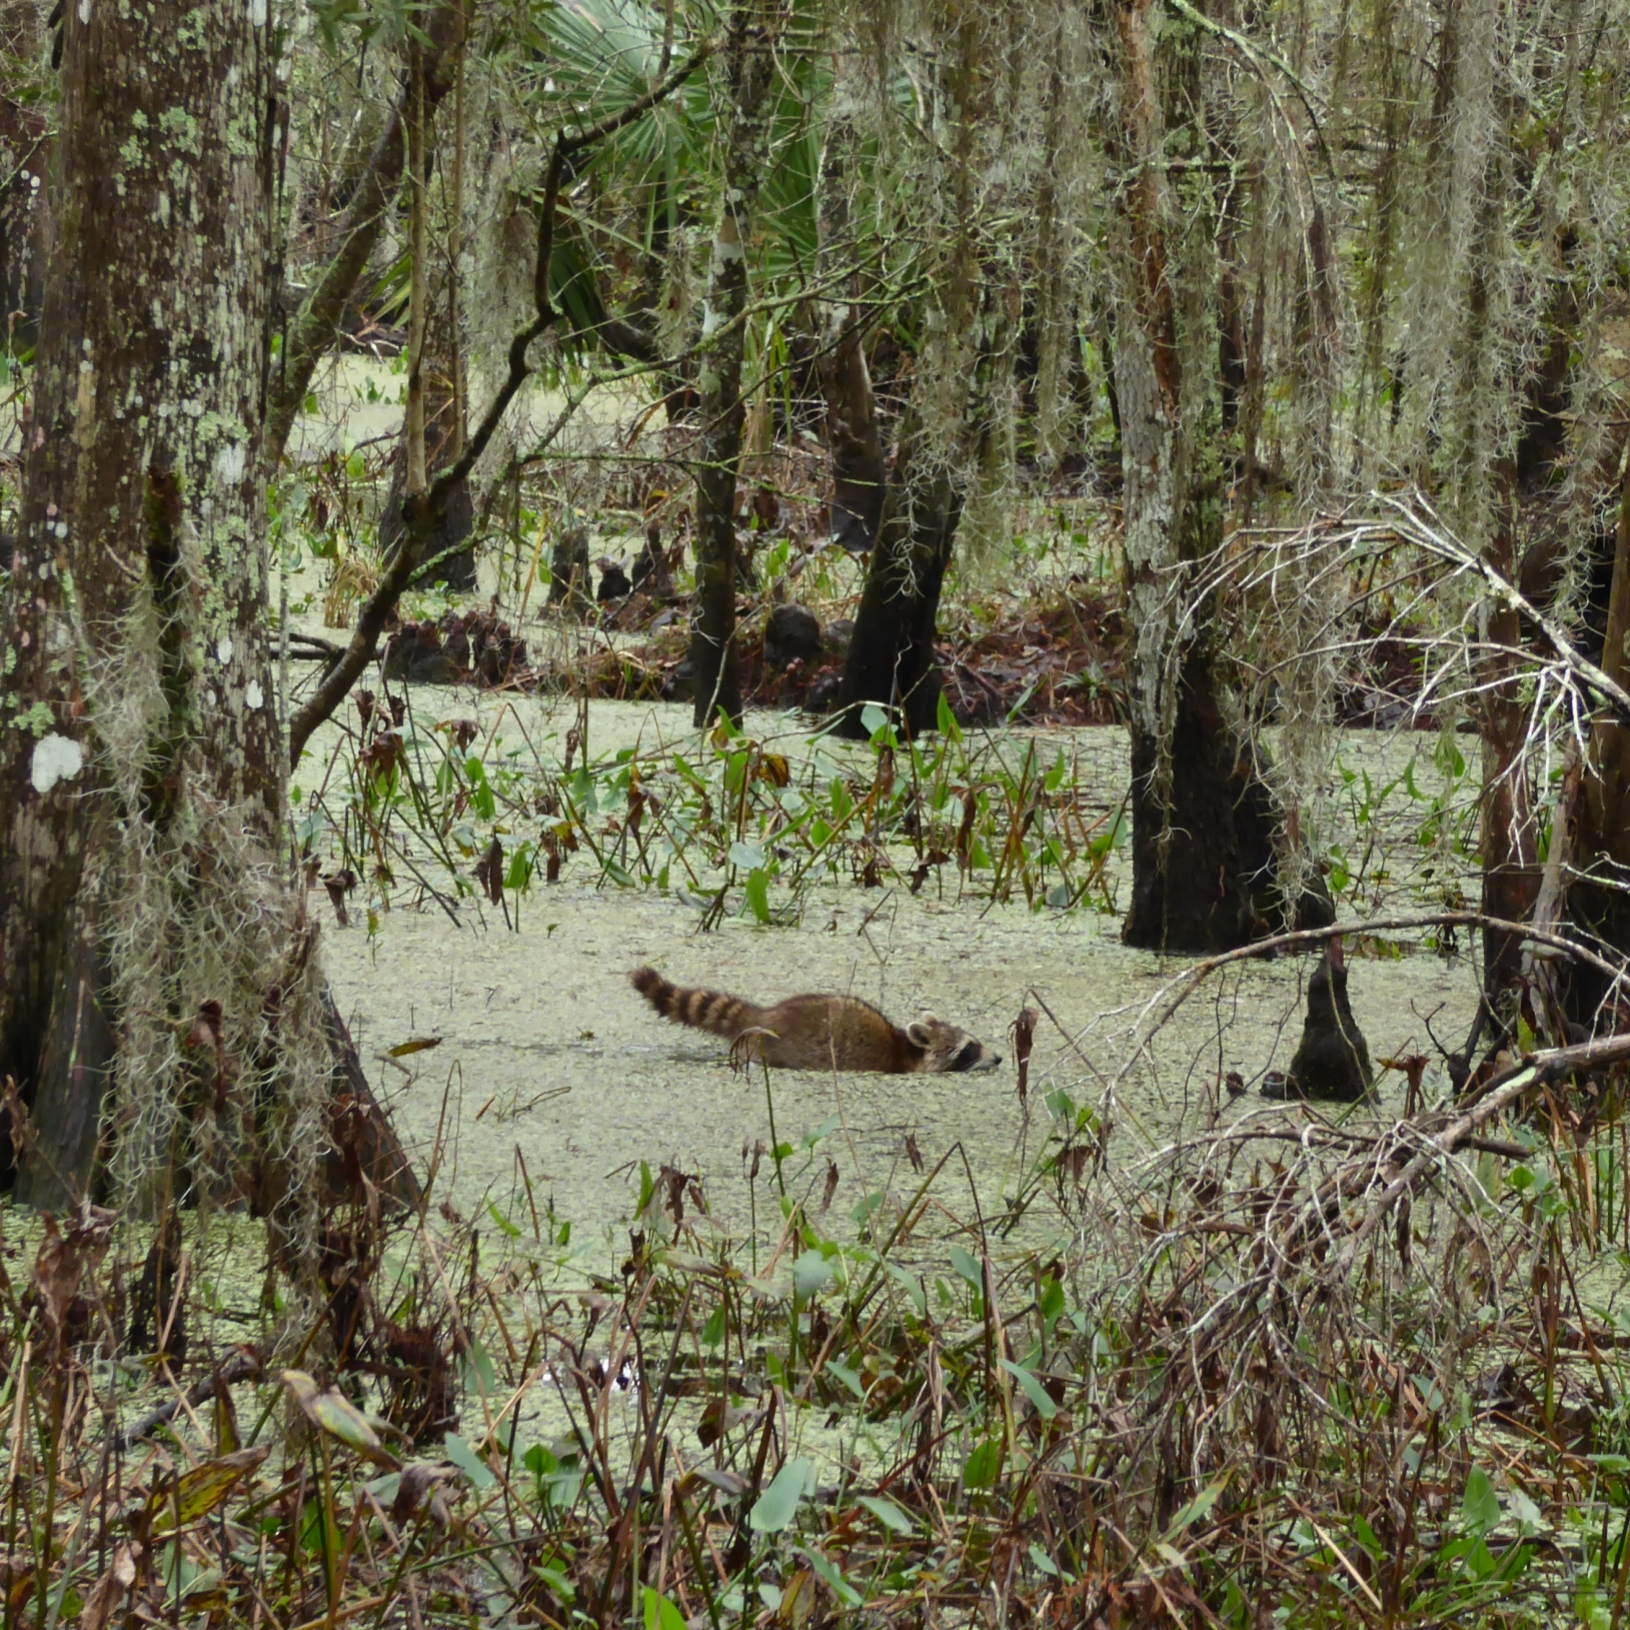 racoon walking through a swamp at the Barataria Preserve. Part of the Jean Lafitte National Historal Park